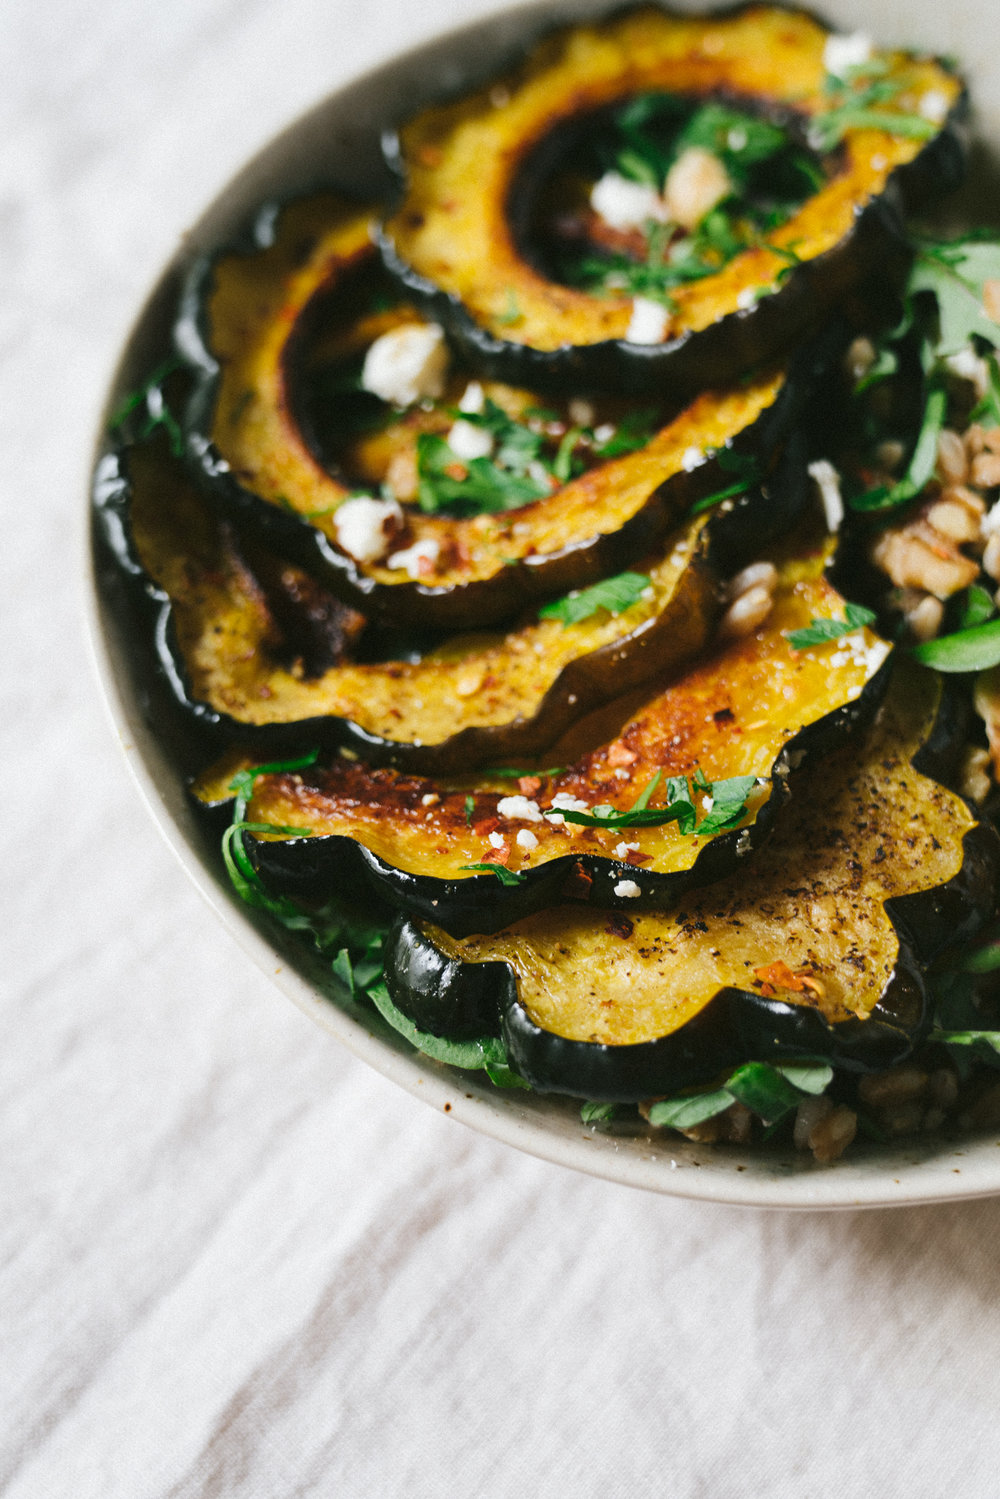 Roasted Acorn Squash Grains and Greens Salad with Feta